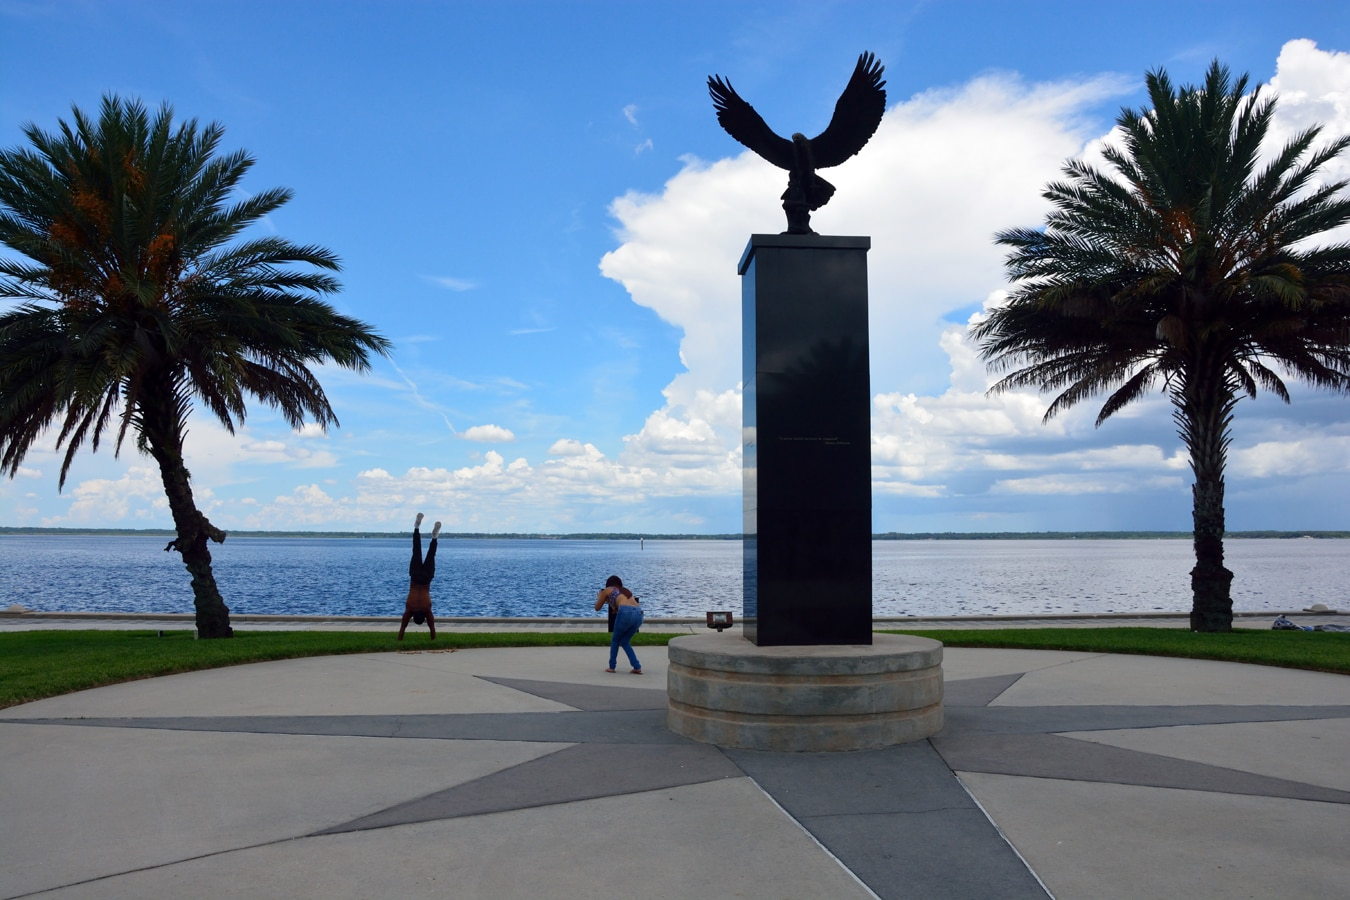 Veterans Memorial Park, Sanford, Fla.